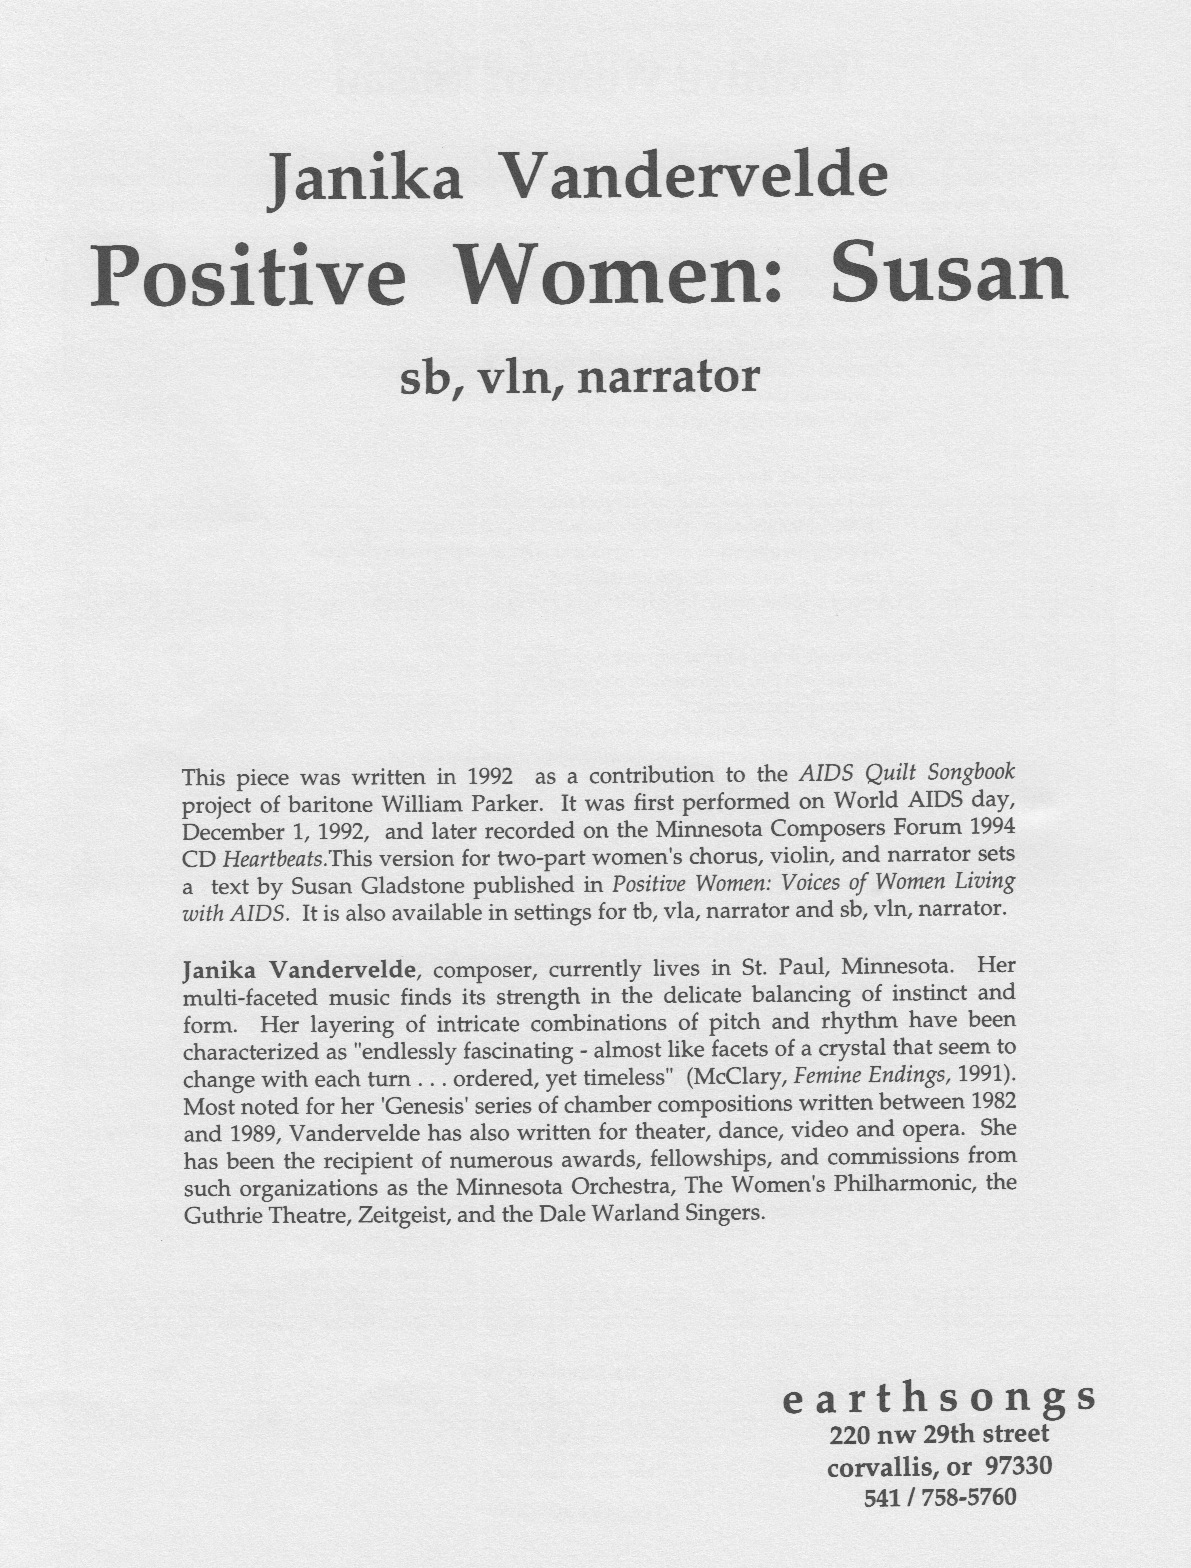 positive women: susan (sb)